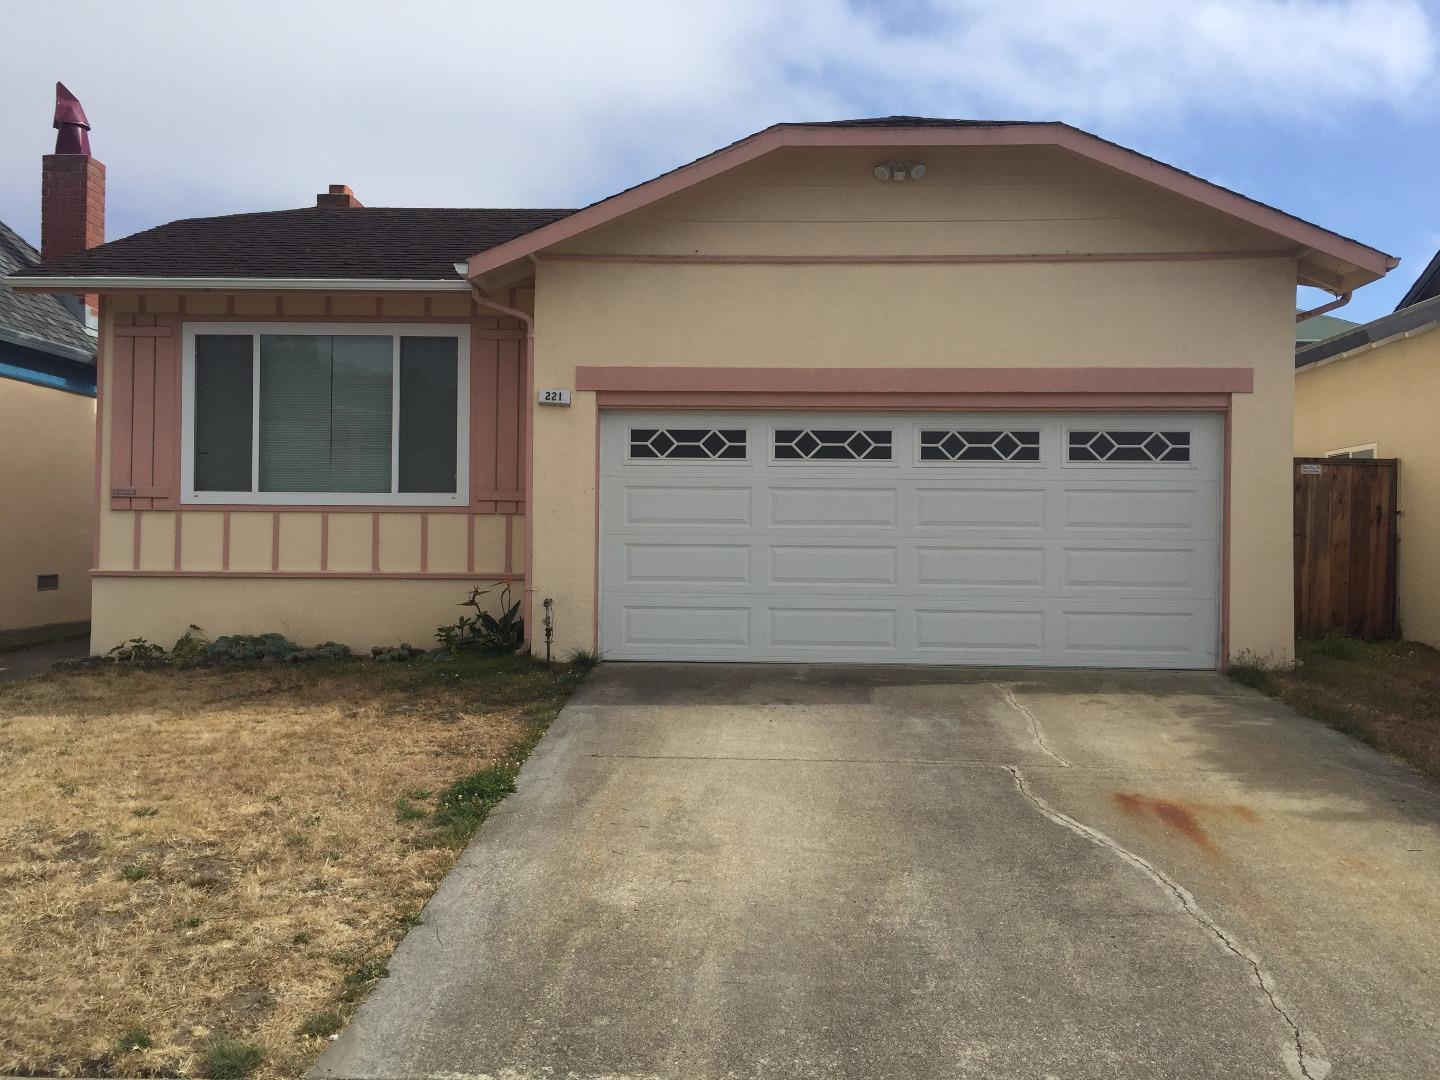 Single Family Home for Sale at 221 Forest Park Drive Pacifica, California 94044 United States